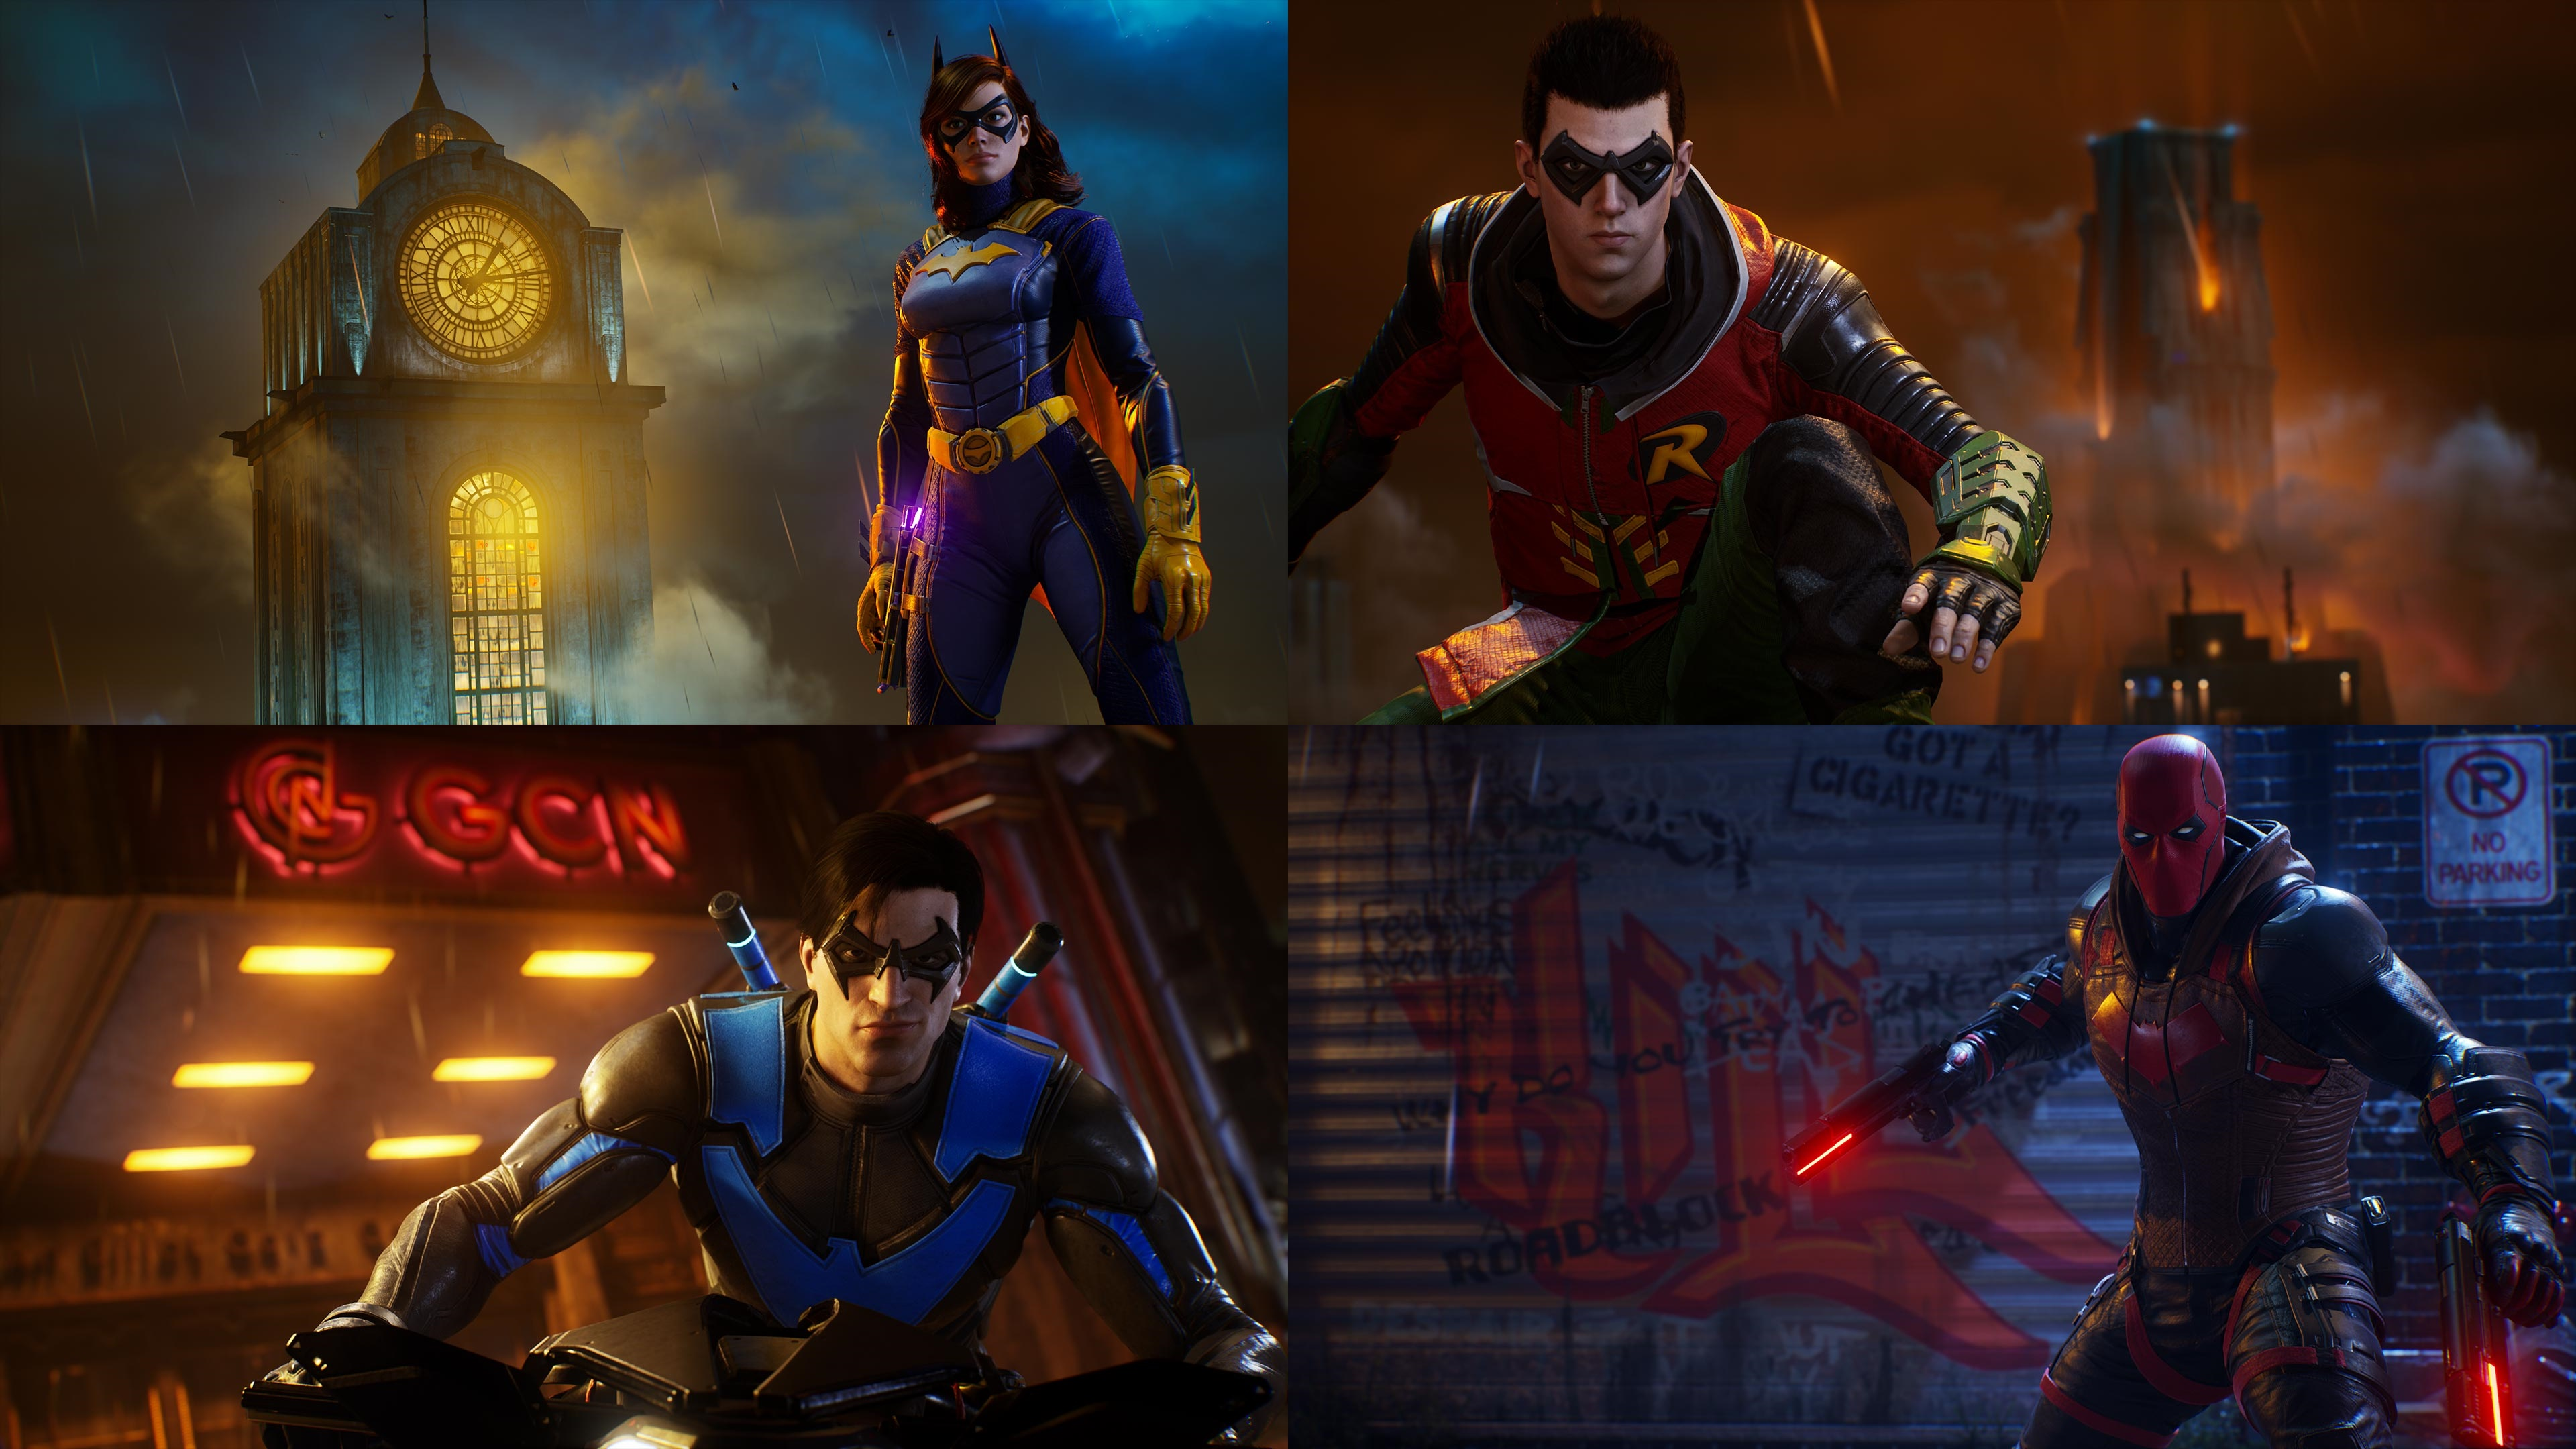 Gotham Knights release date, trailers, gameplay, news and rumors thumbnail